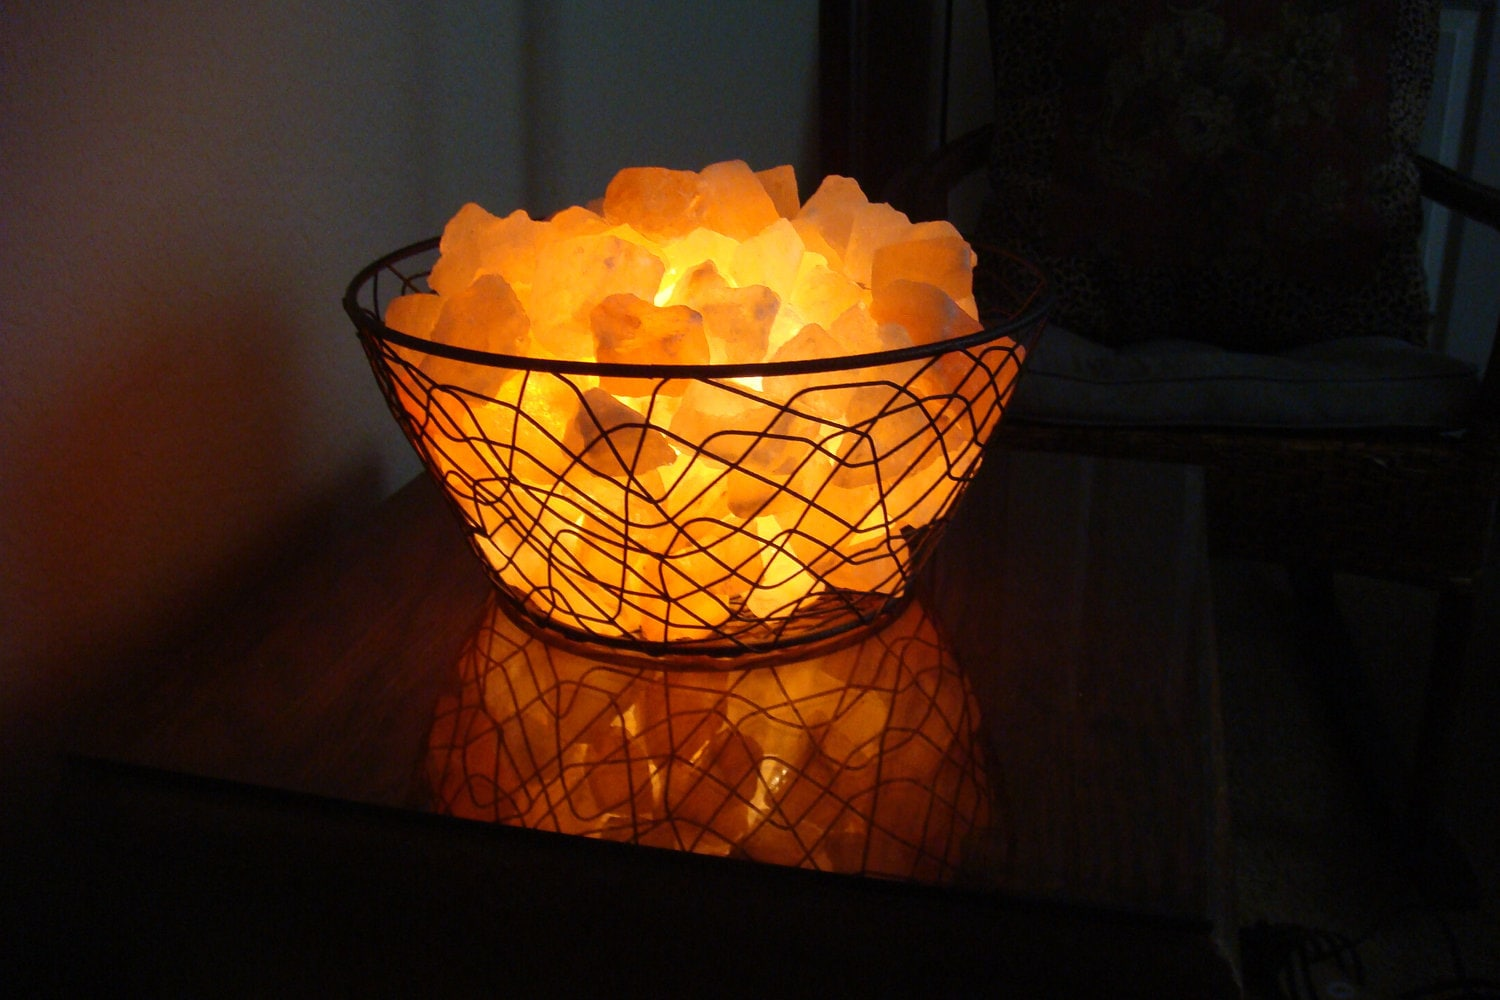 himalayan salt lamp basket by cherrycreeknv on etsy